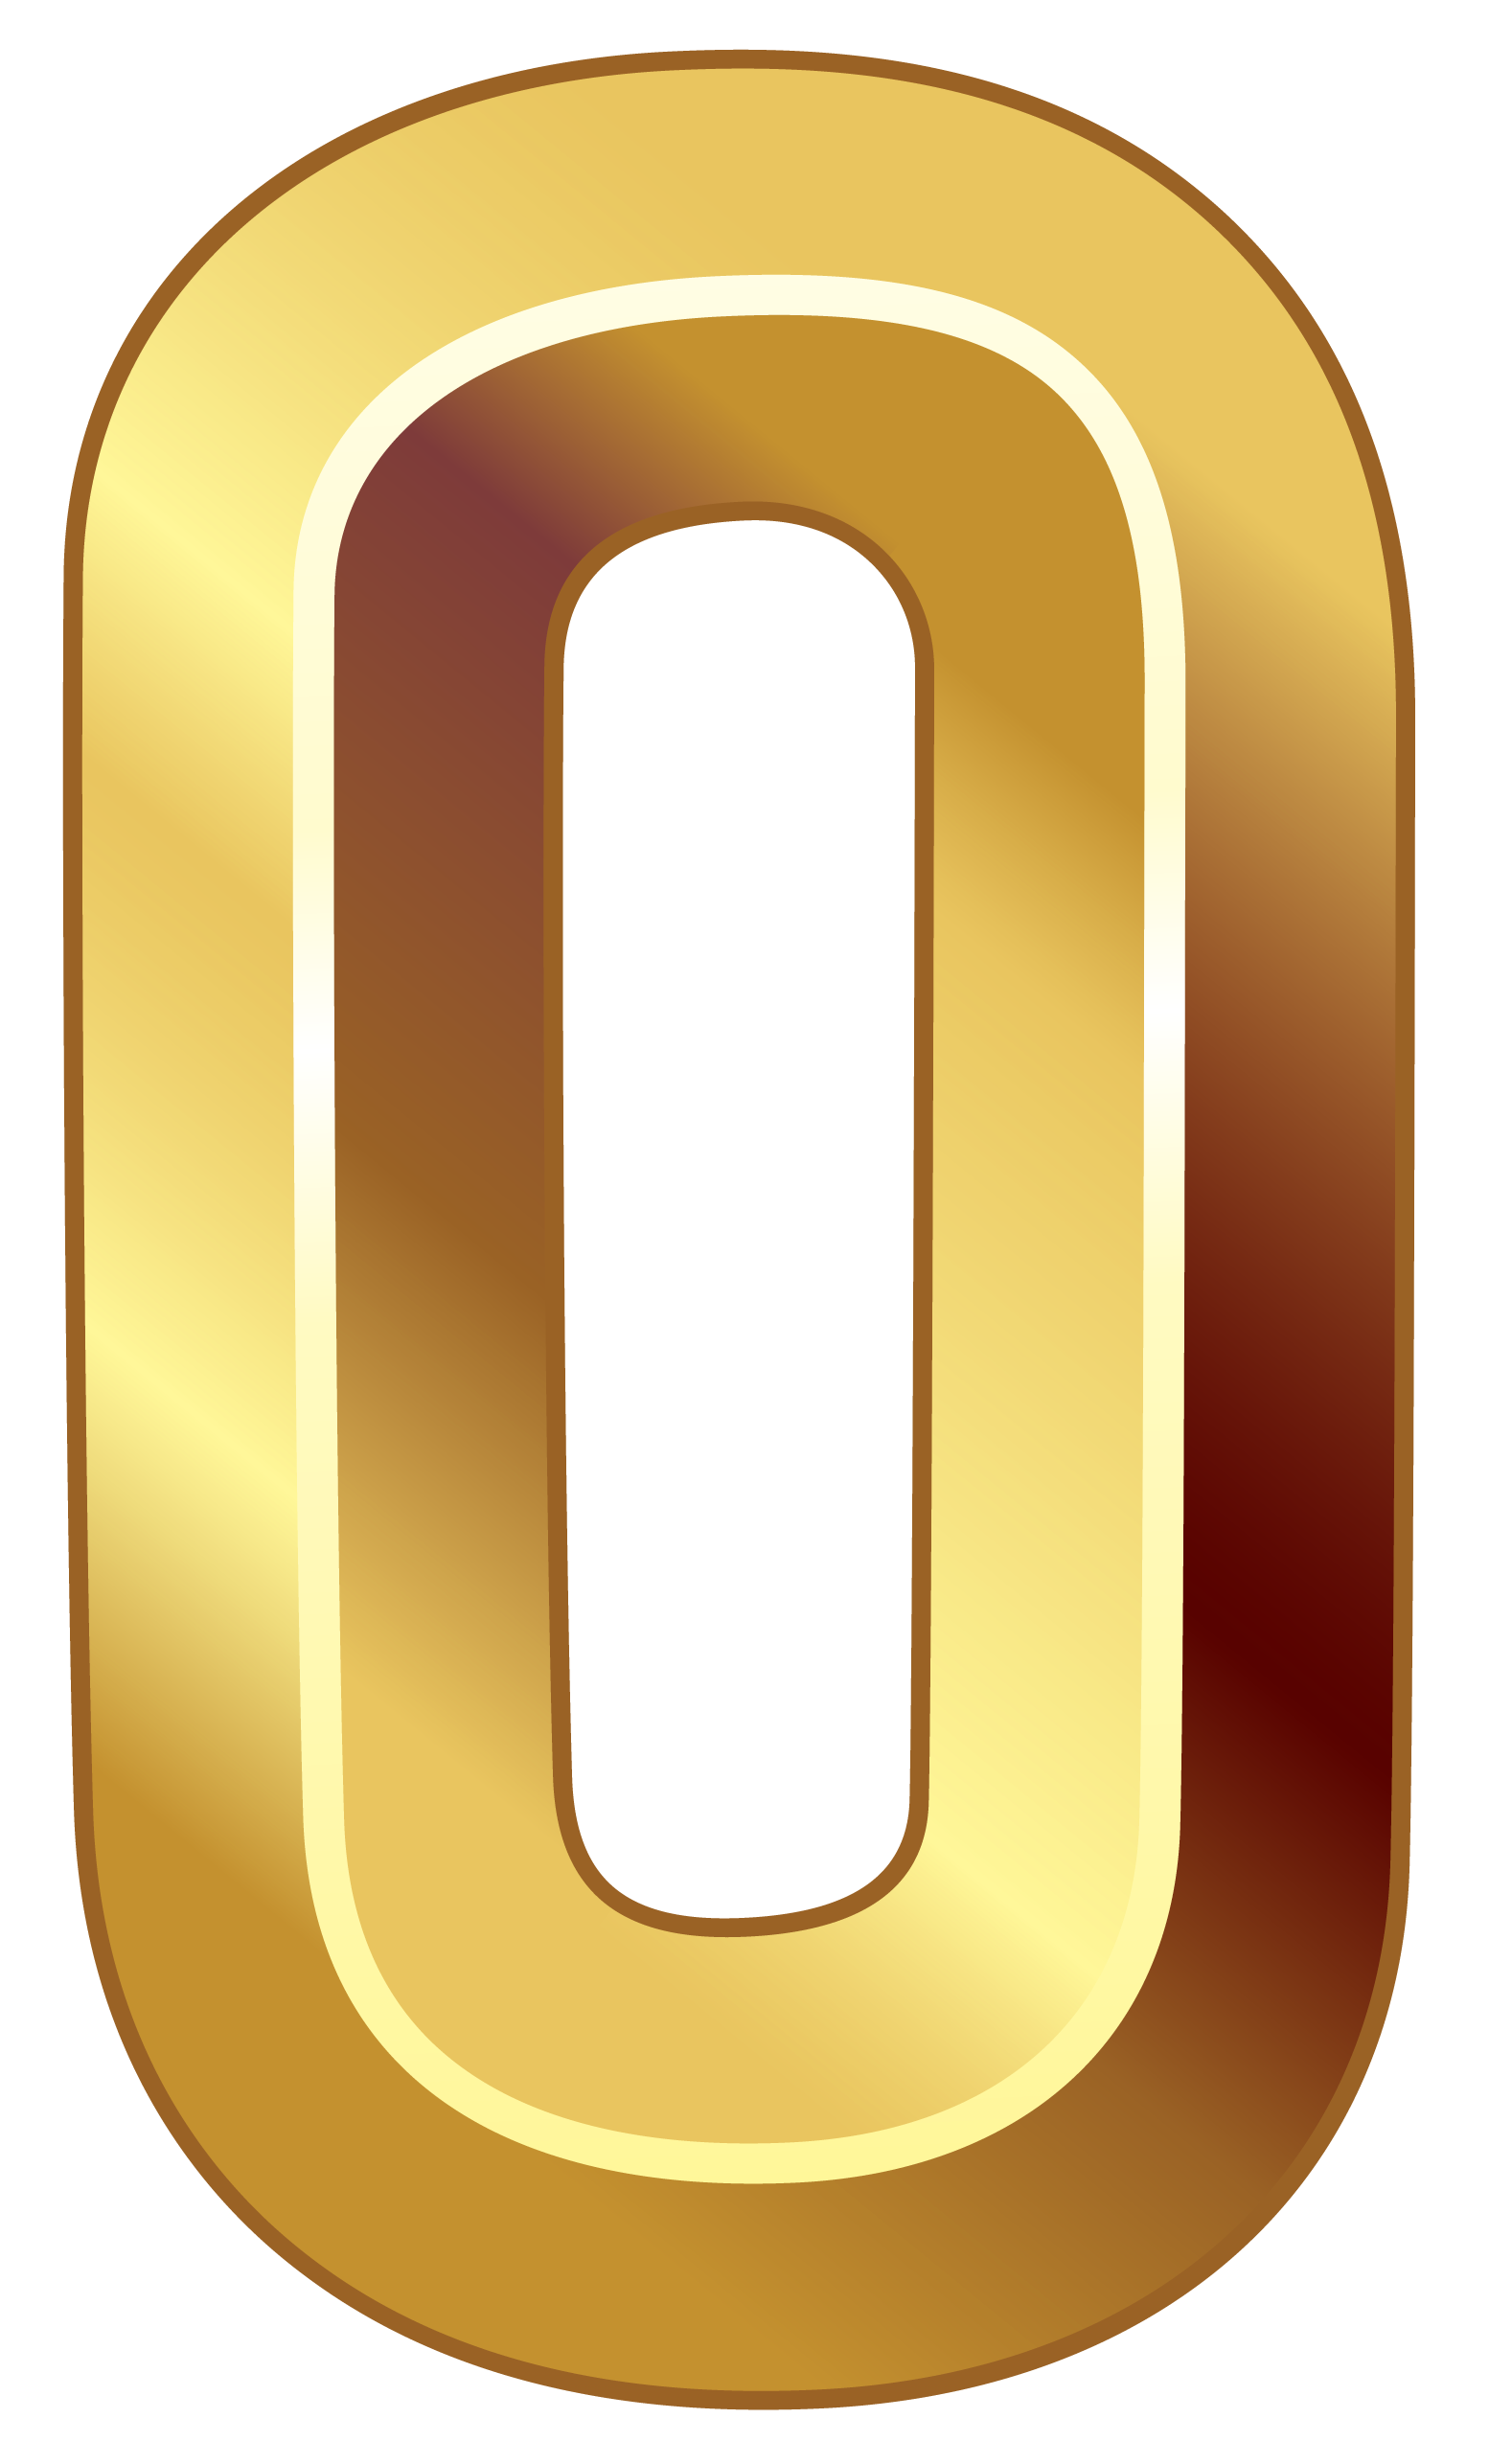 Gold Number Zero Png Clipart Image